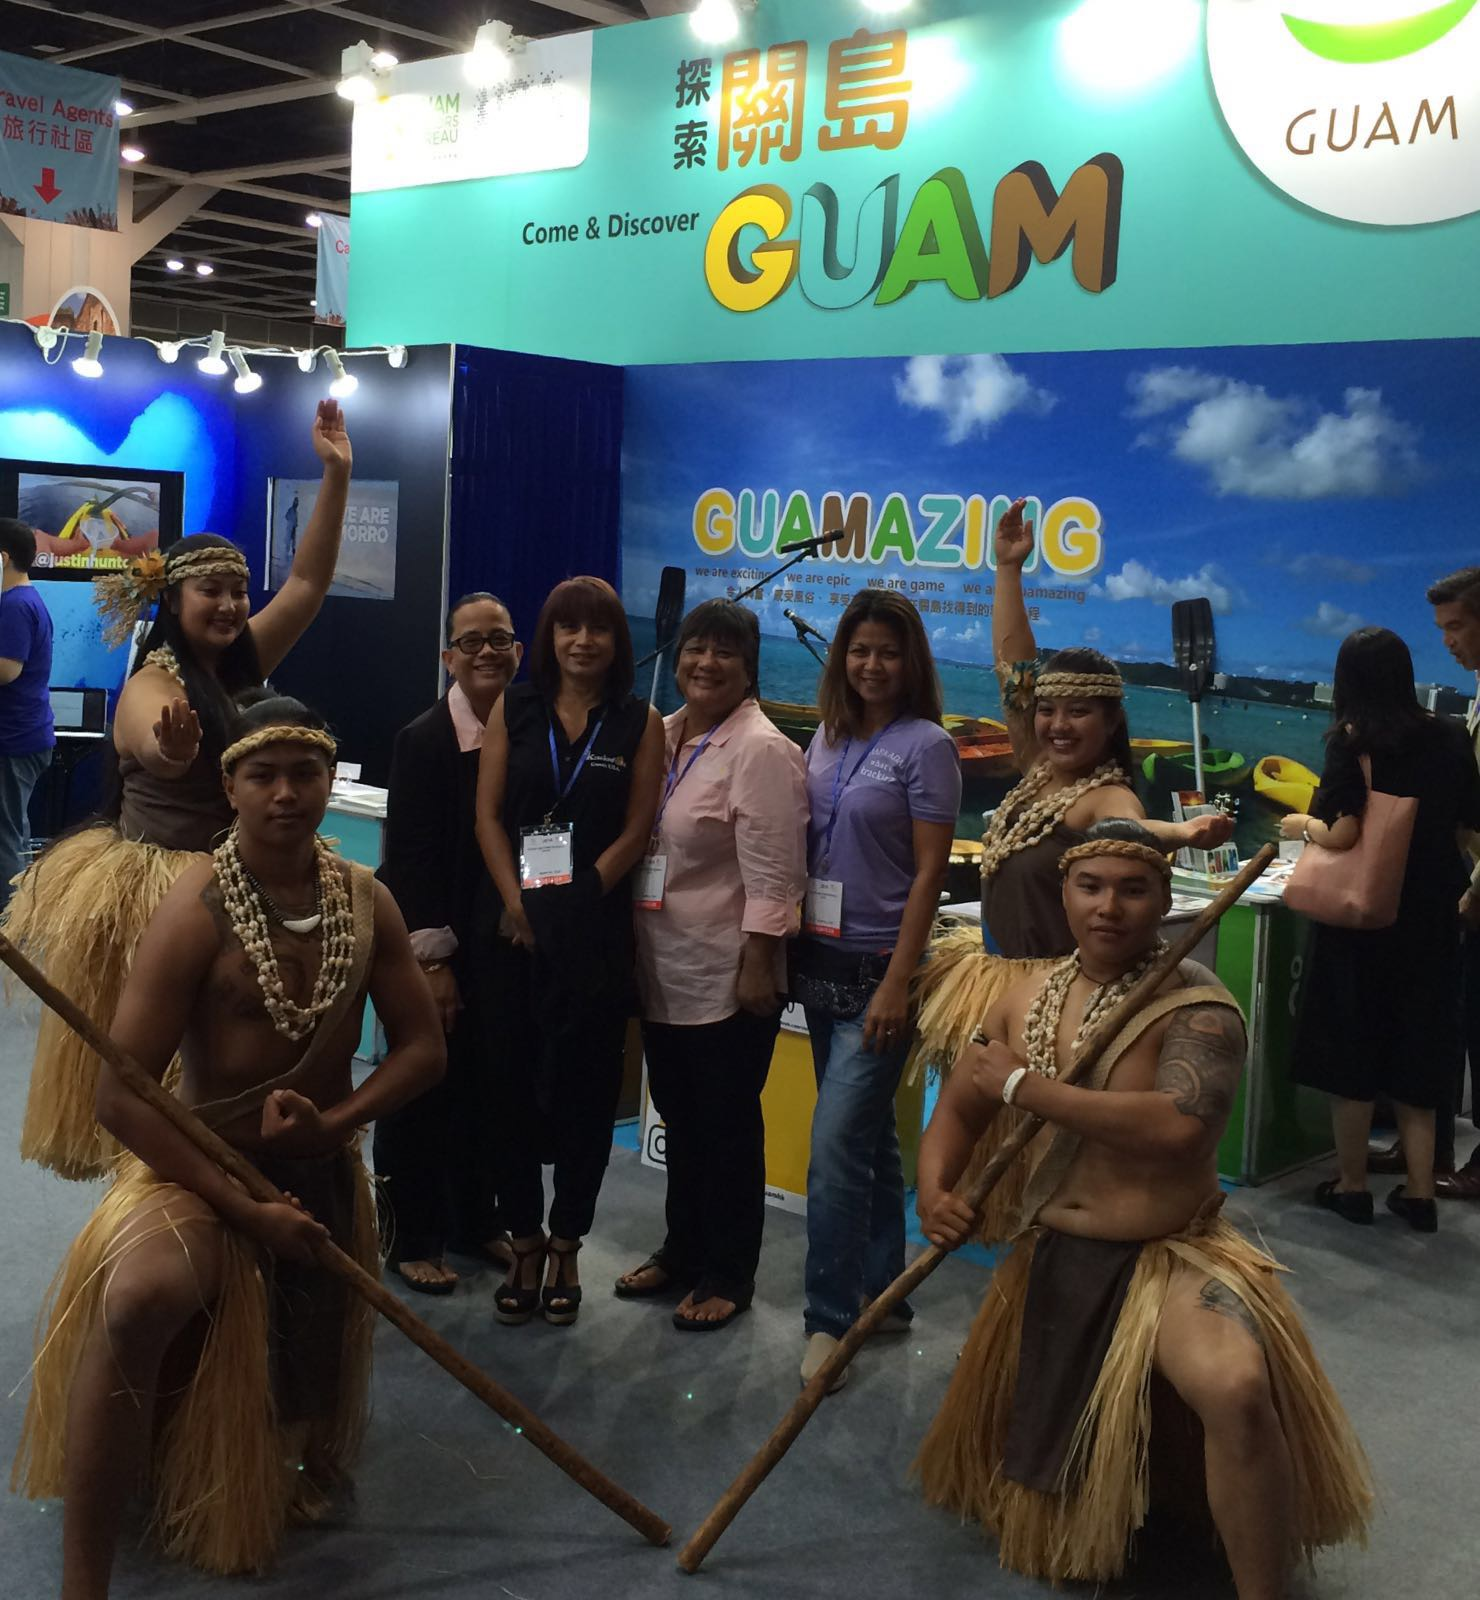 Kracked Egg Owners in attendance at The 30th International Travel Expo in Hong Kong.From Left:Jennifer Muna Aguon, Annmarie T. Muna, Antonita (Toni) Blas, and Lory Tydingco